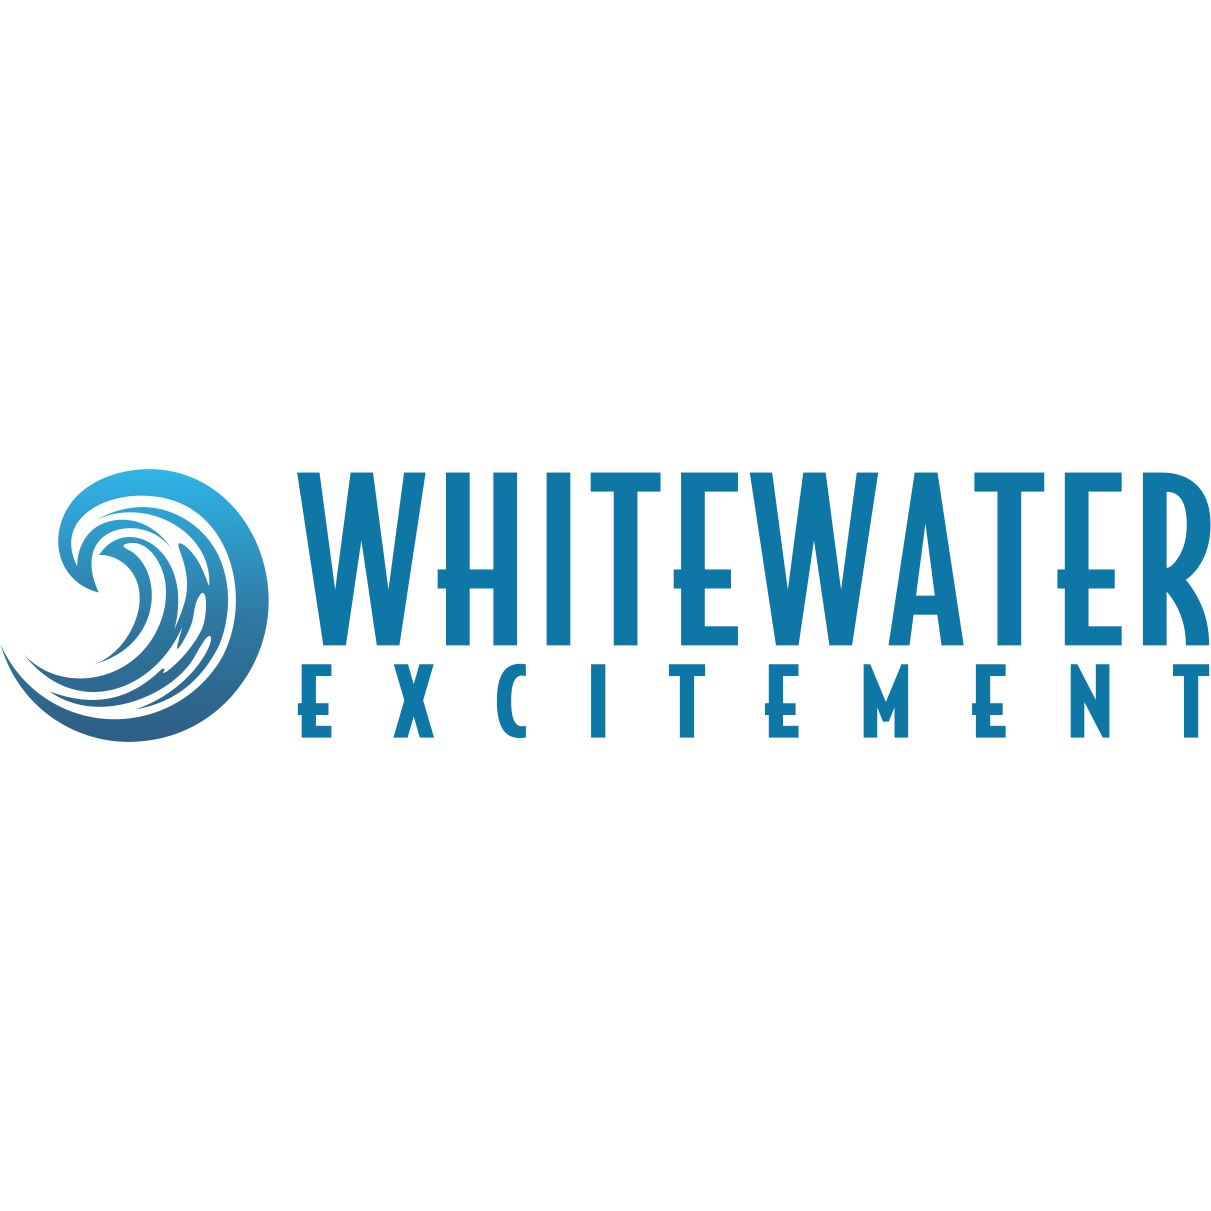 Whitewater Excitement, Inc. image 5